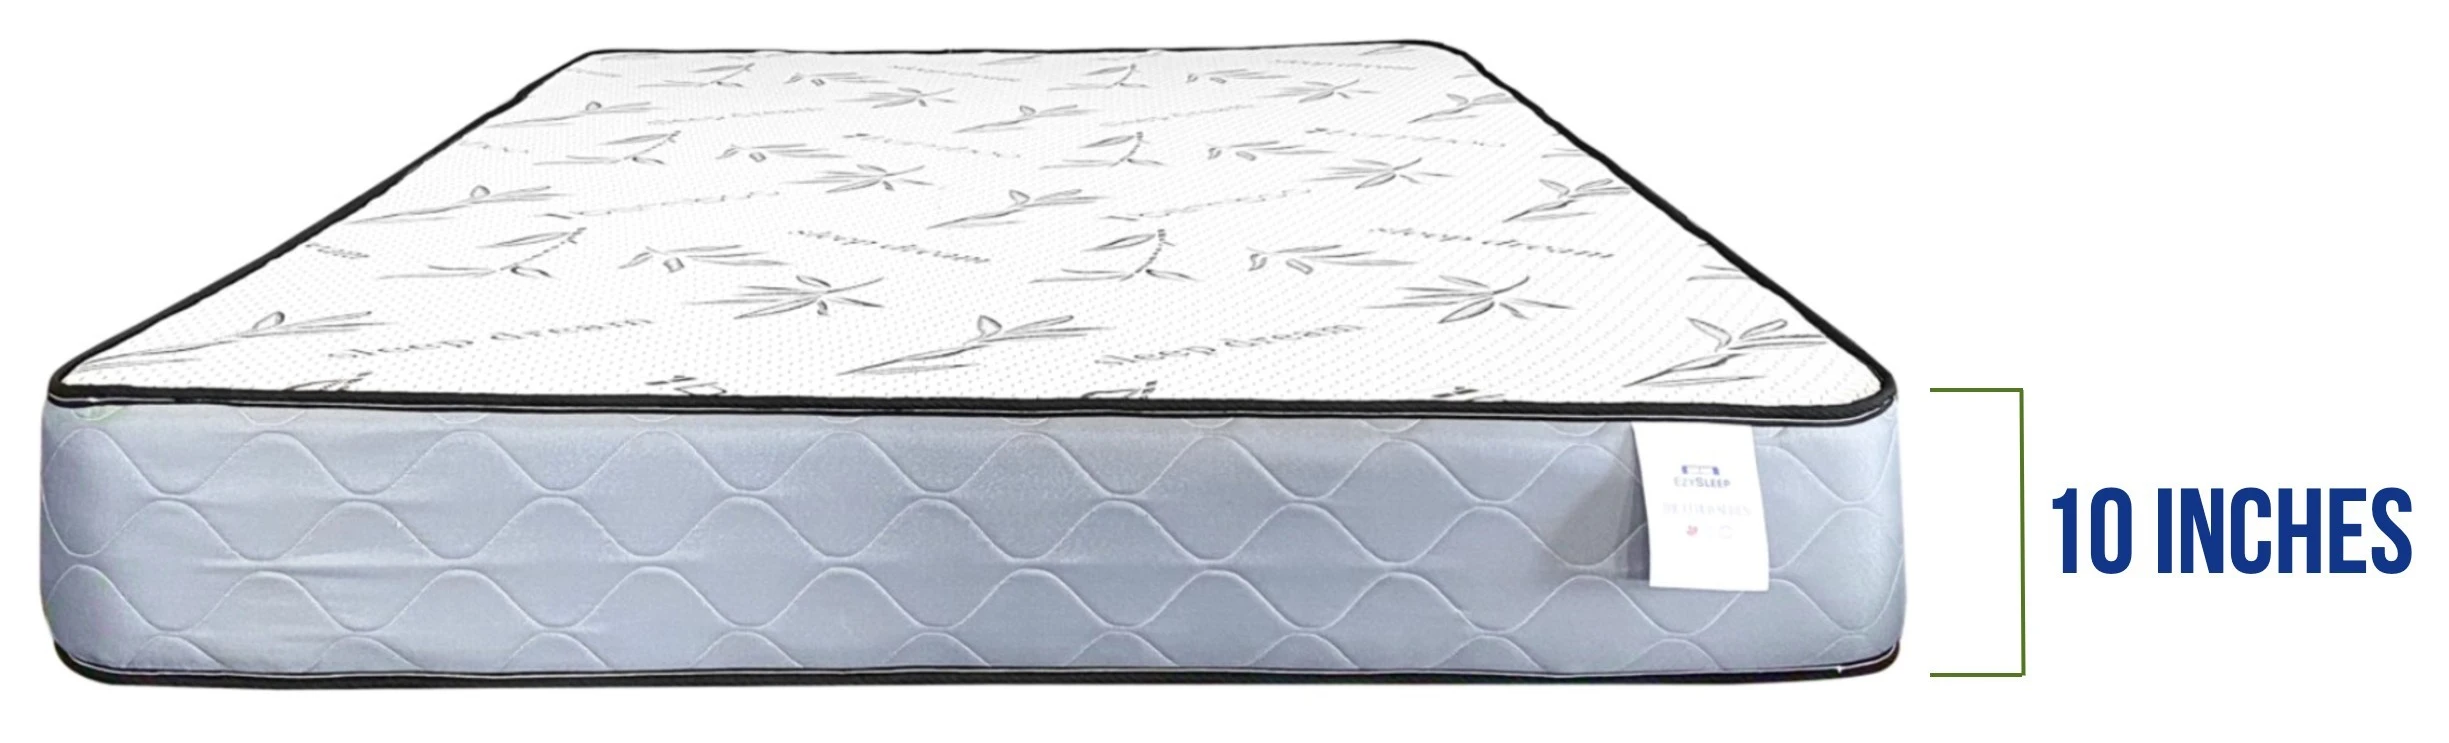 The Cloud Series Mattress 10in Thickness